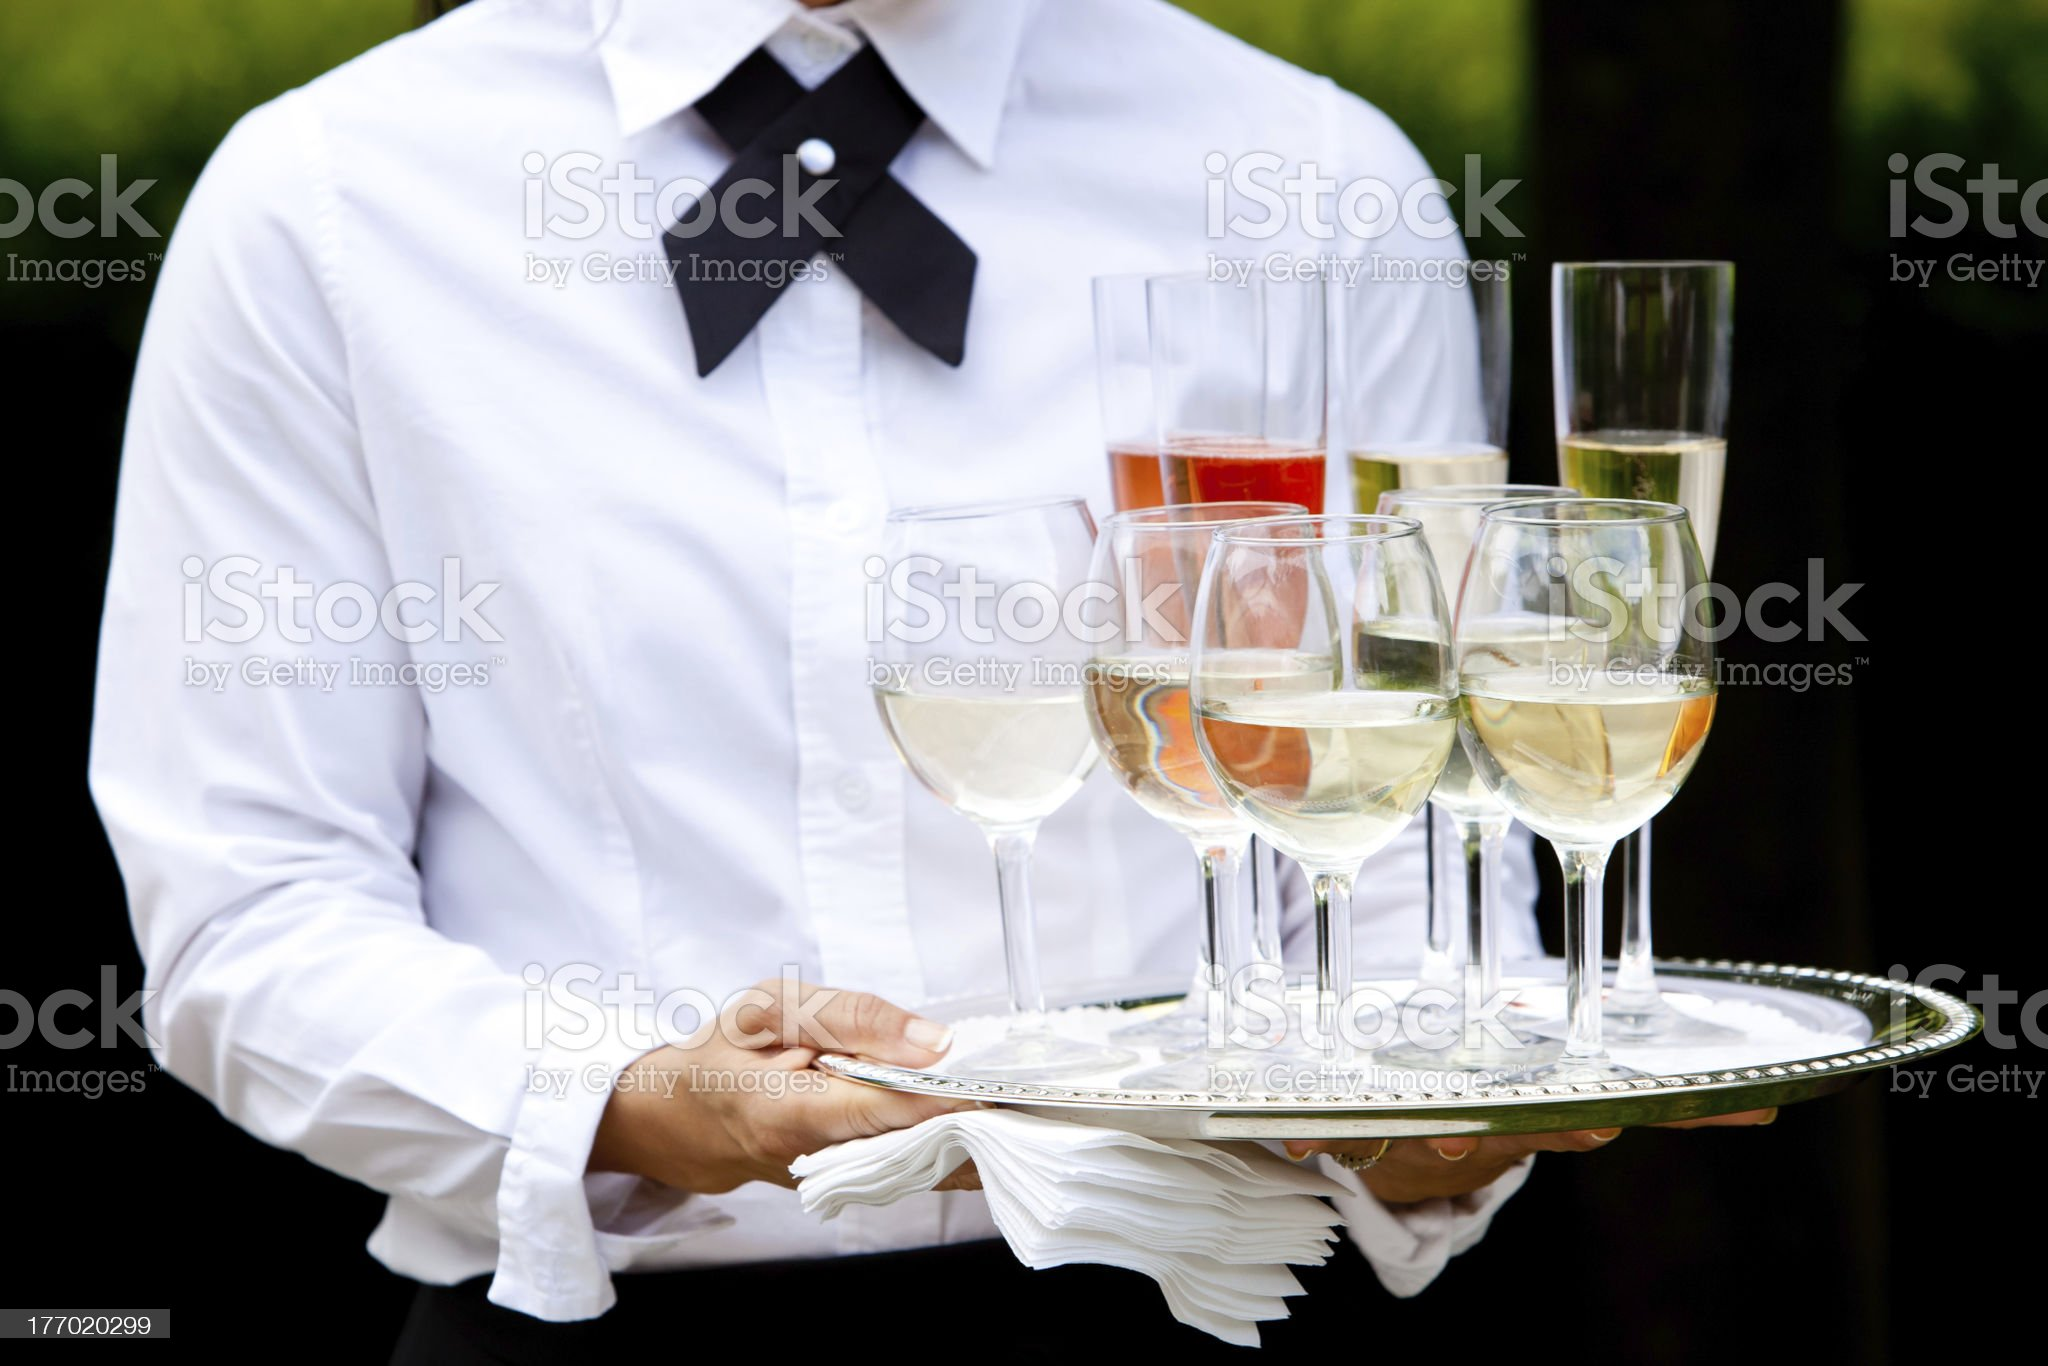 Beverages being served royalty-free stock photo